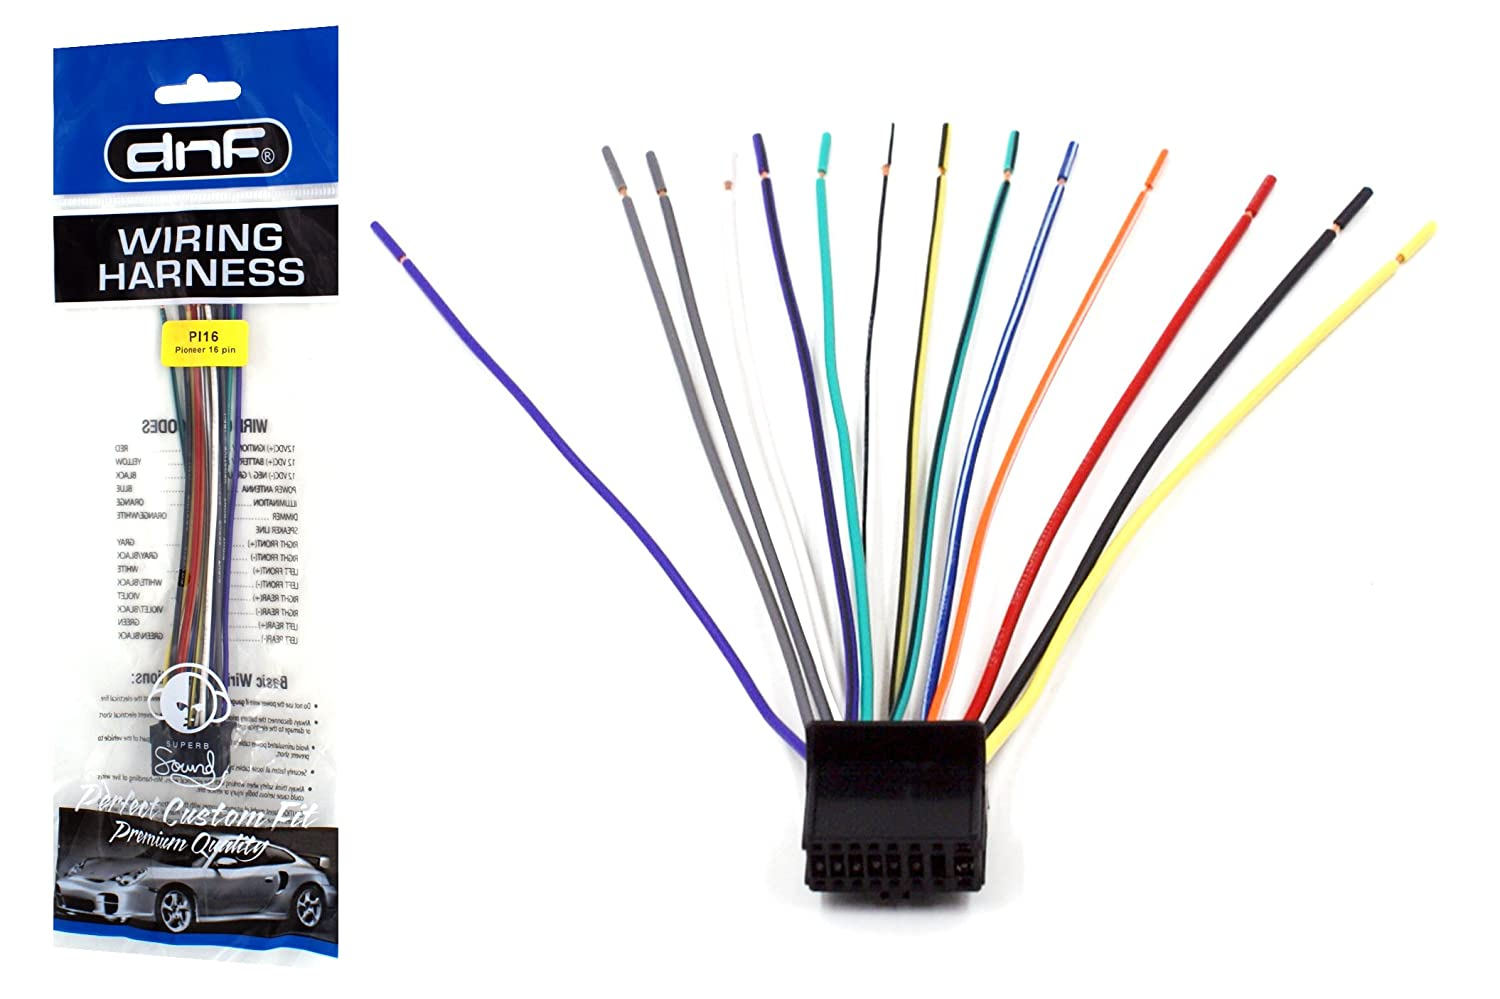 71A5xHv4deL._SL1500_ amazon com dnf pioneer wiring harness 0307 deh p4000ub deh p400ub pioneer deh p4600mp wiring diagram at virtualis.co